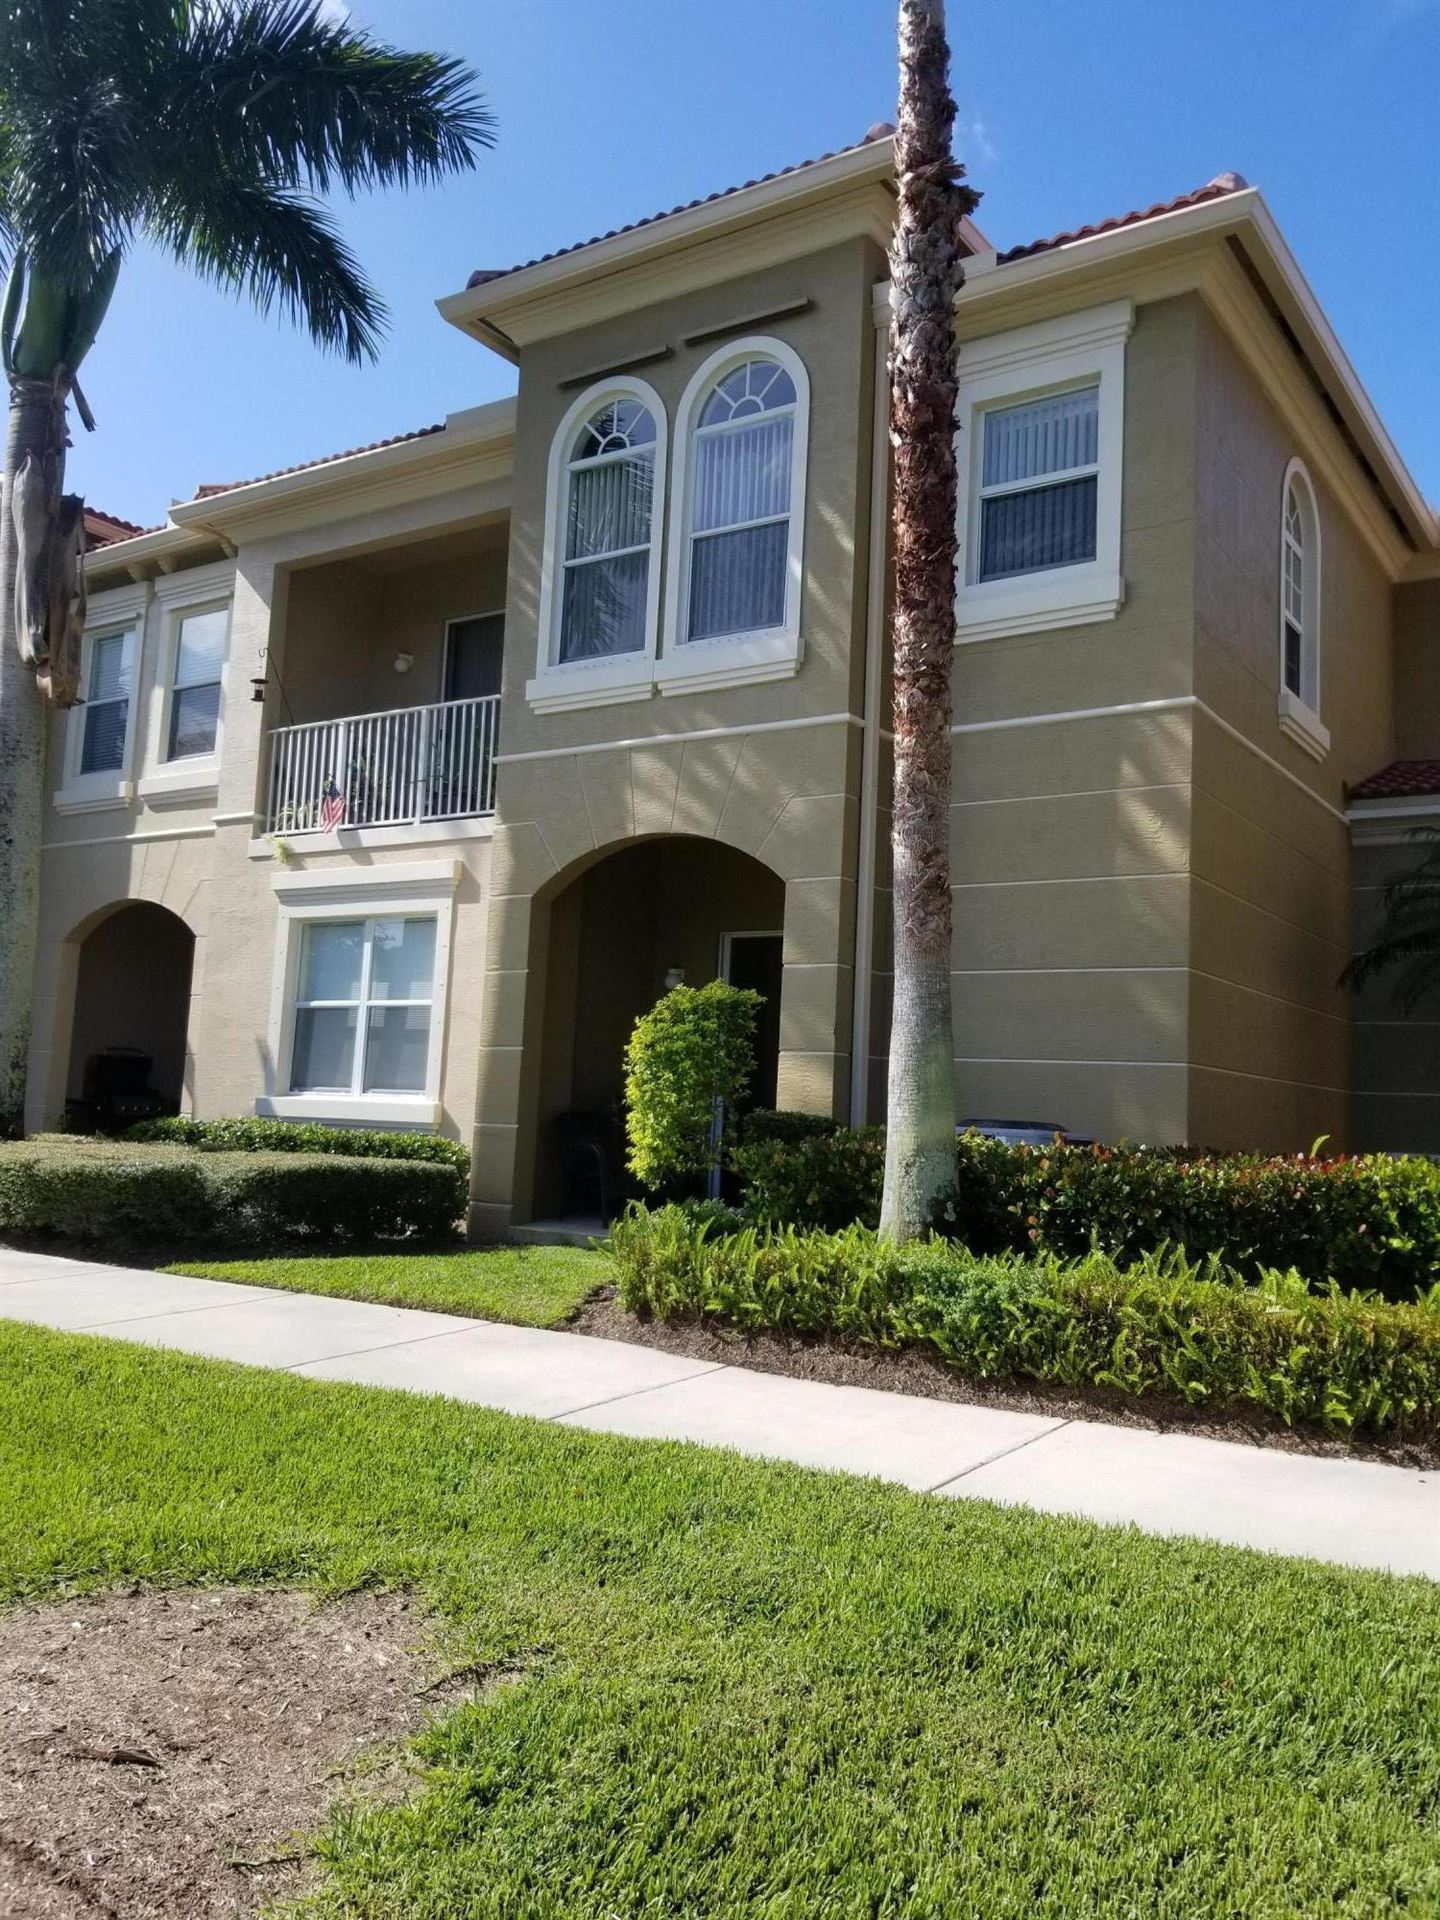 4930 Bonsai Circle #100, Palm Beach Gardens, FL 33418 - #: RX-10657807